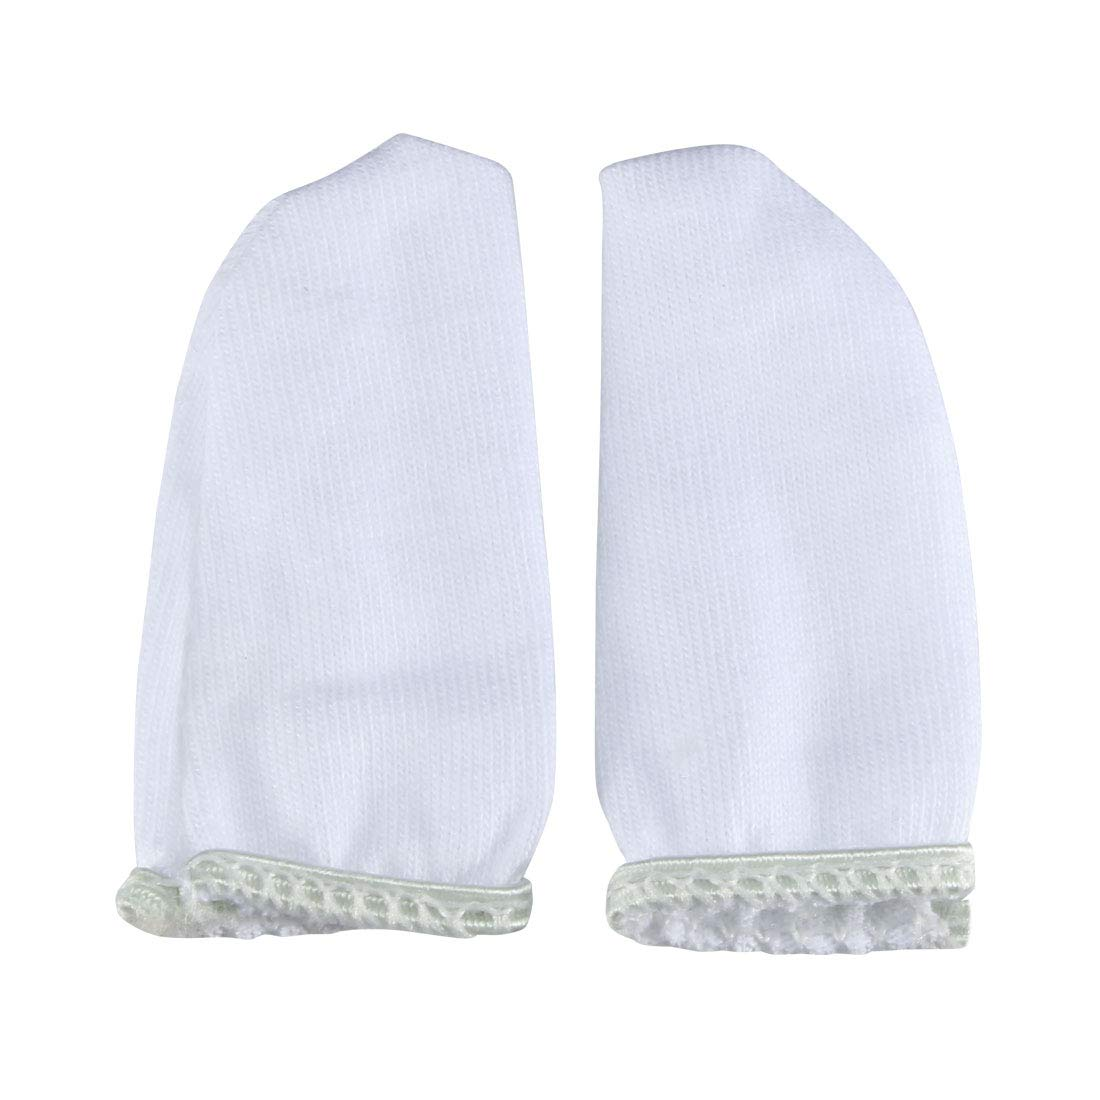 uxcell 420pcs 5.5cm-6cm Industry Working Tool Cotton Blends Finger Cots Sleeve White